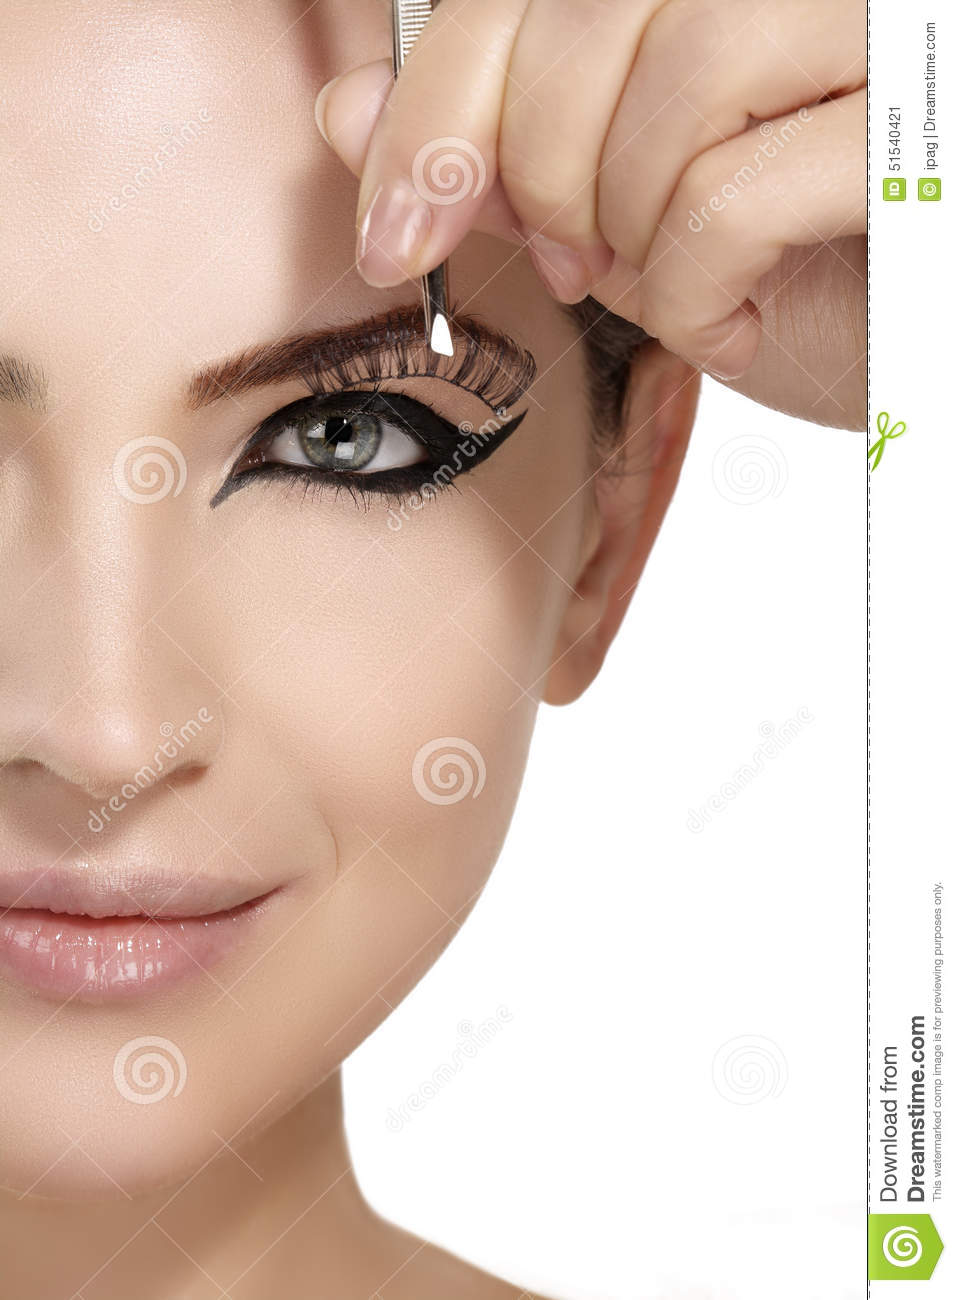 how to put artificial eyelashes